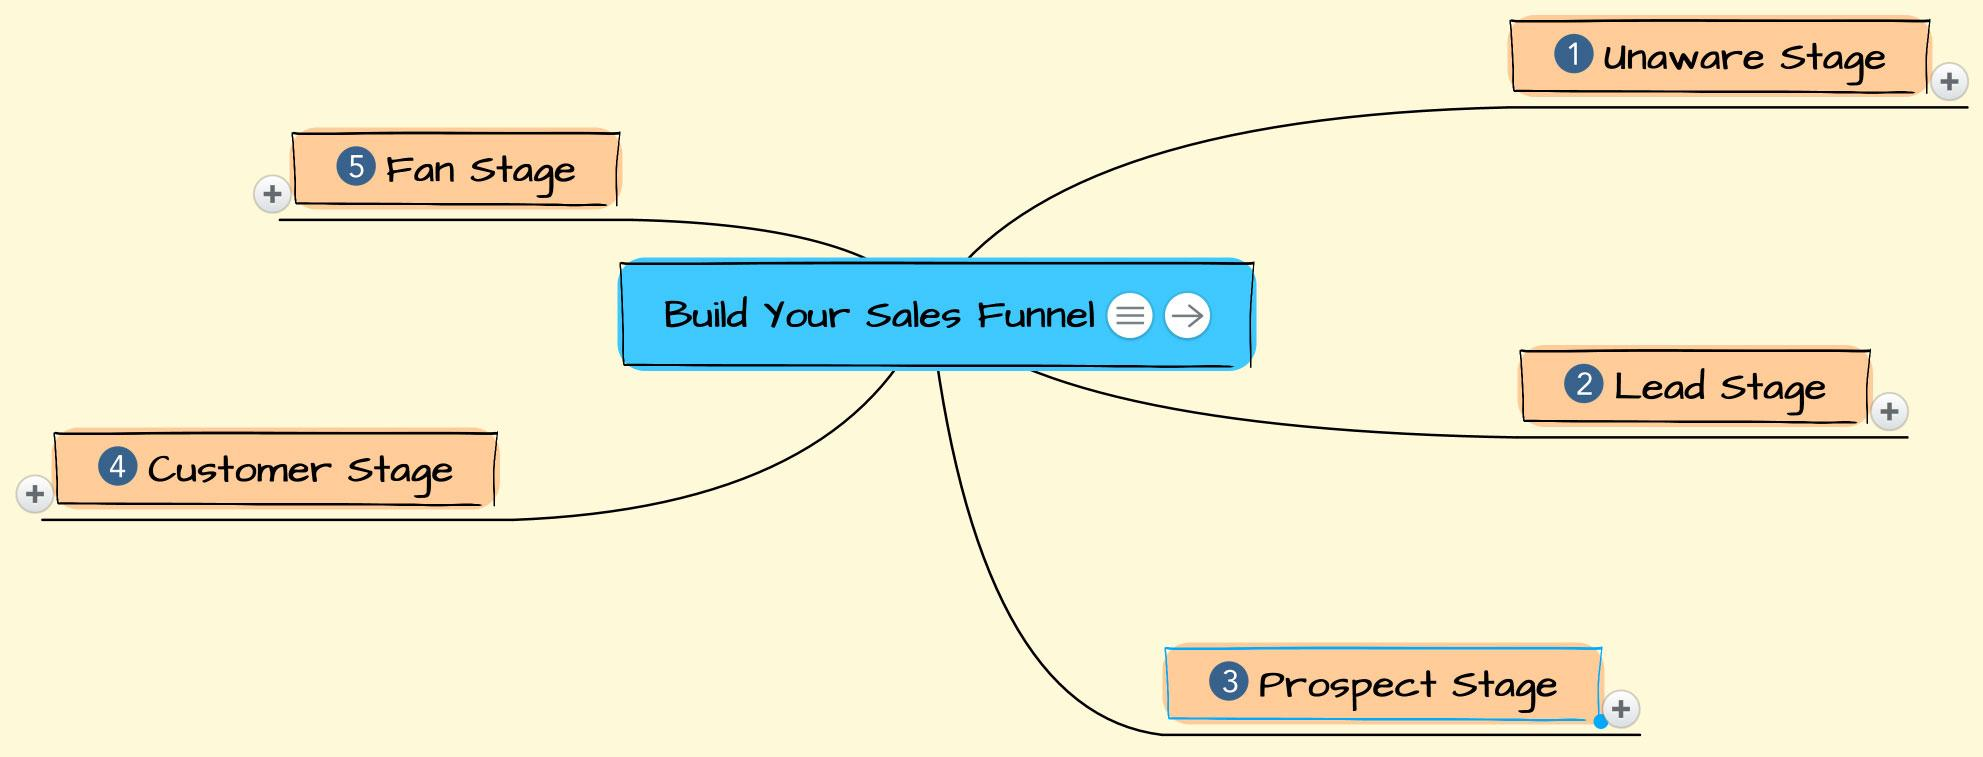 build your sales funnel mind map